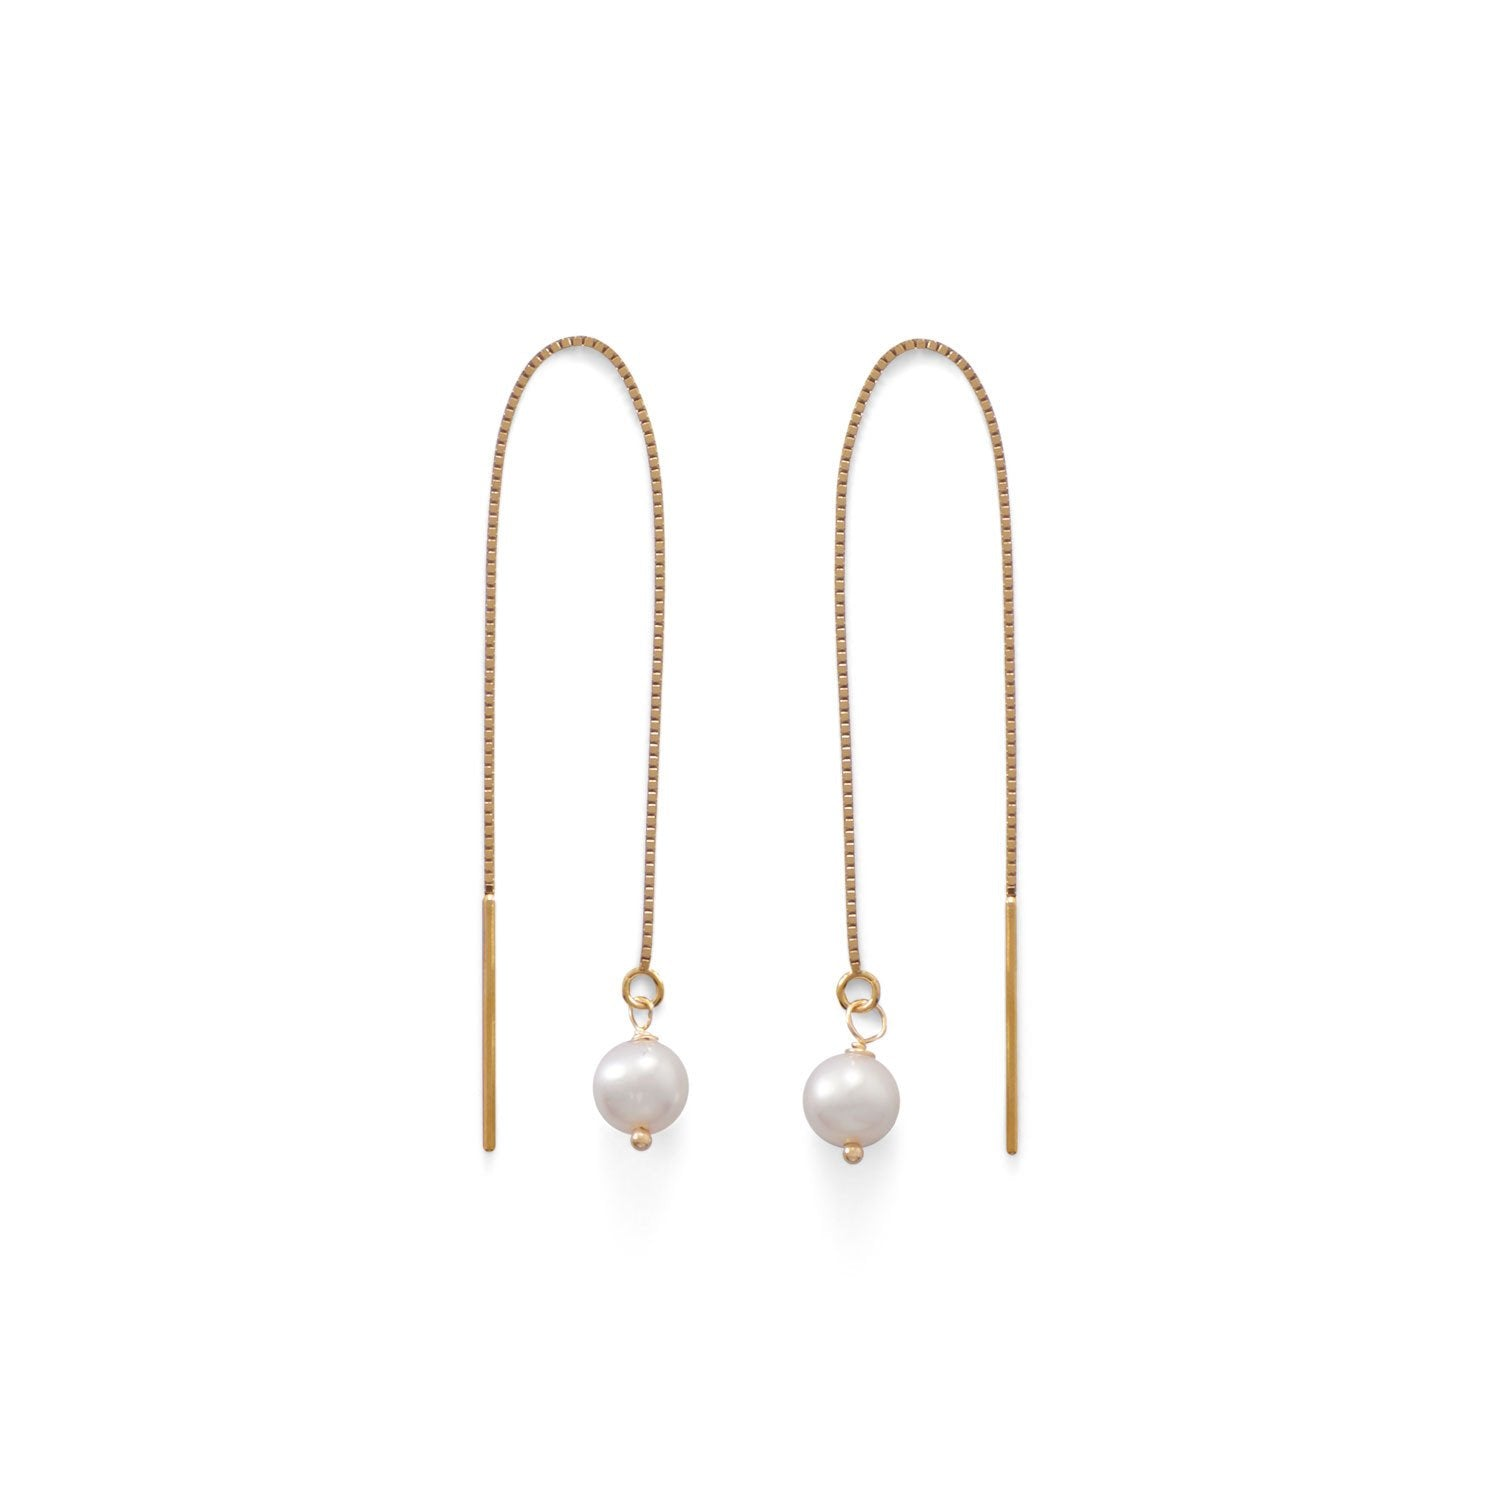 14 Karat Gold Cultured Freshwater Pearl Threader Earrings - Rocky Mt. Discount Outlet